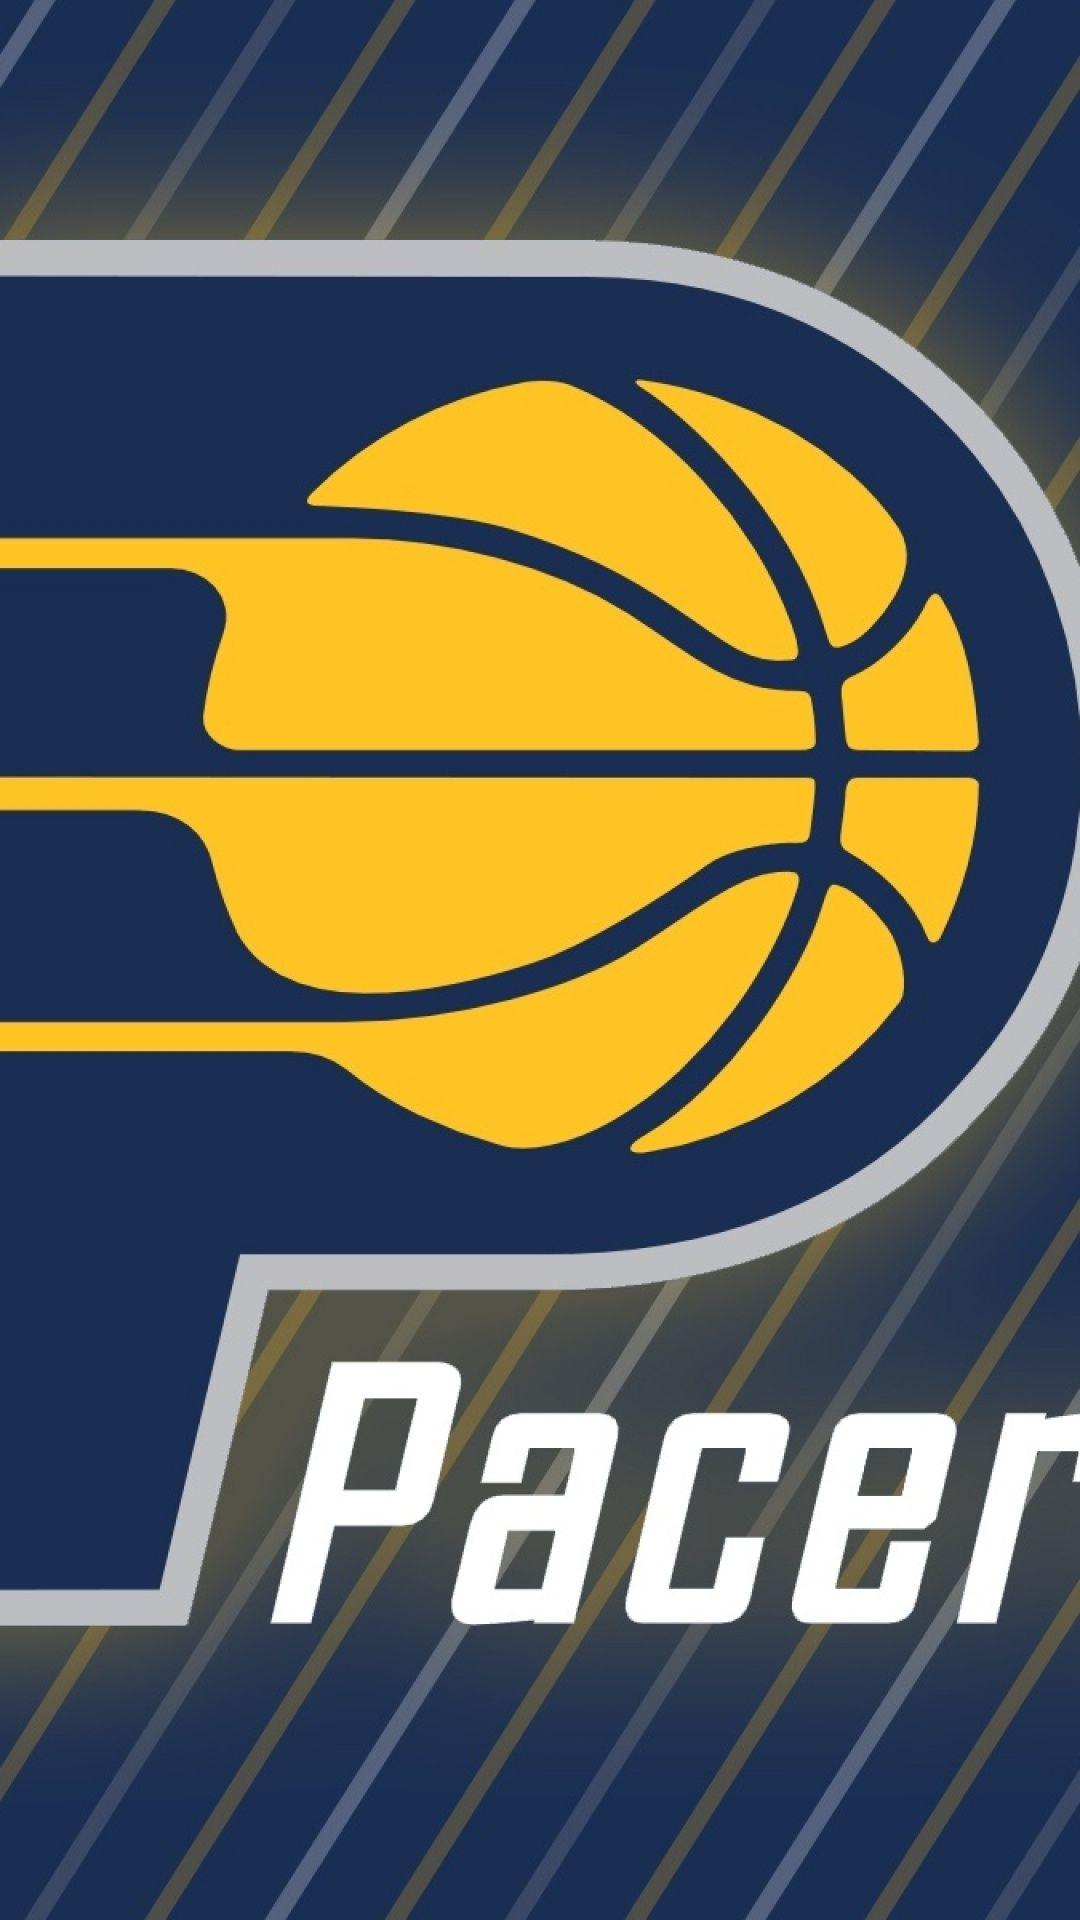 Indiana Pacers iPhone 5 Wallpaper | ID: 25825